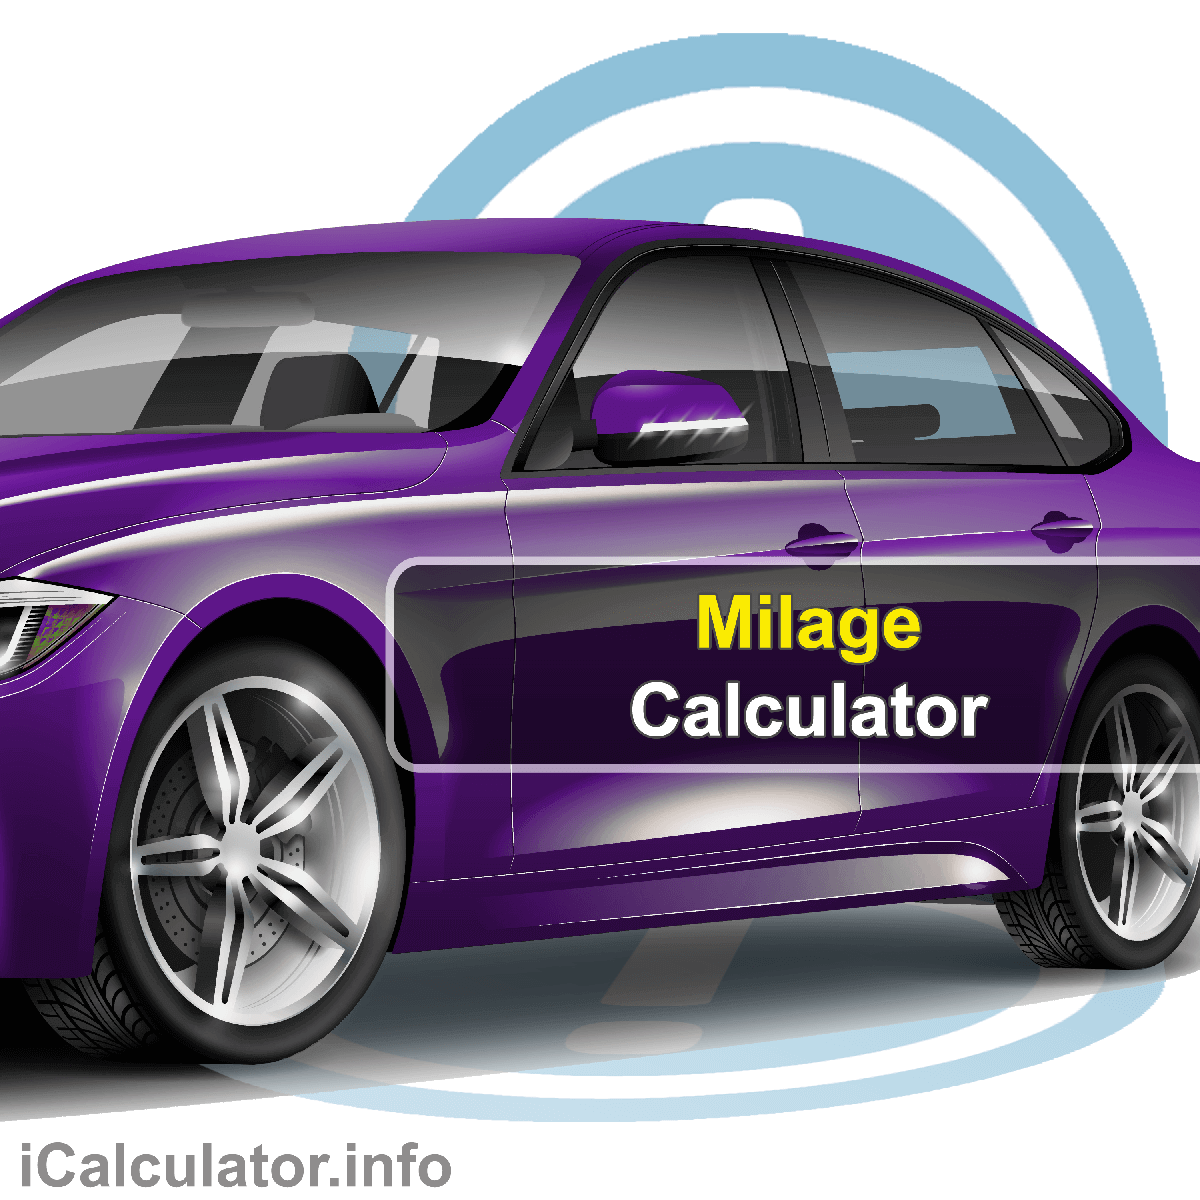 Gas Mileage Comparison Calculator. This image provides details of how to calculate gas mileage and fuel consumption using a calculator and notepad. By using the gas milage and fuel consumption formulas, the Gas Mileage Comparison Calculator provides a true calculation of the cost savings on fuel and make you more aware about your regular fuel consumption